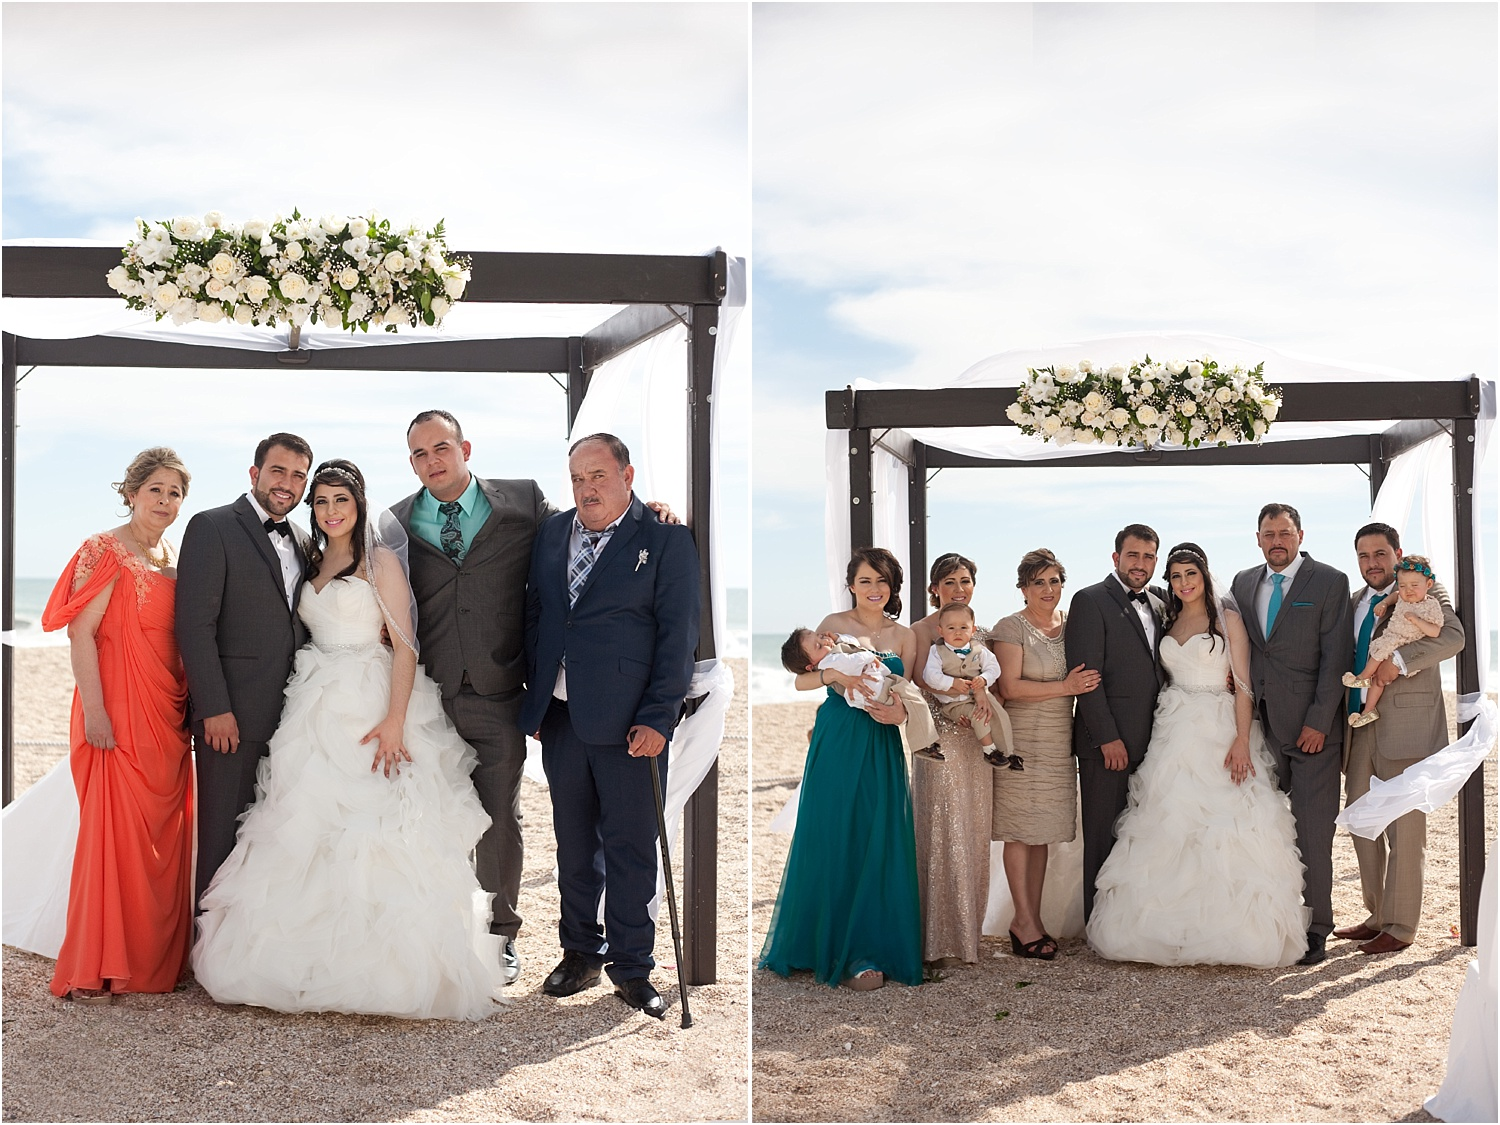 How to photograph family and bridal party portraits quickly at weddings 3